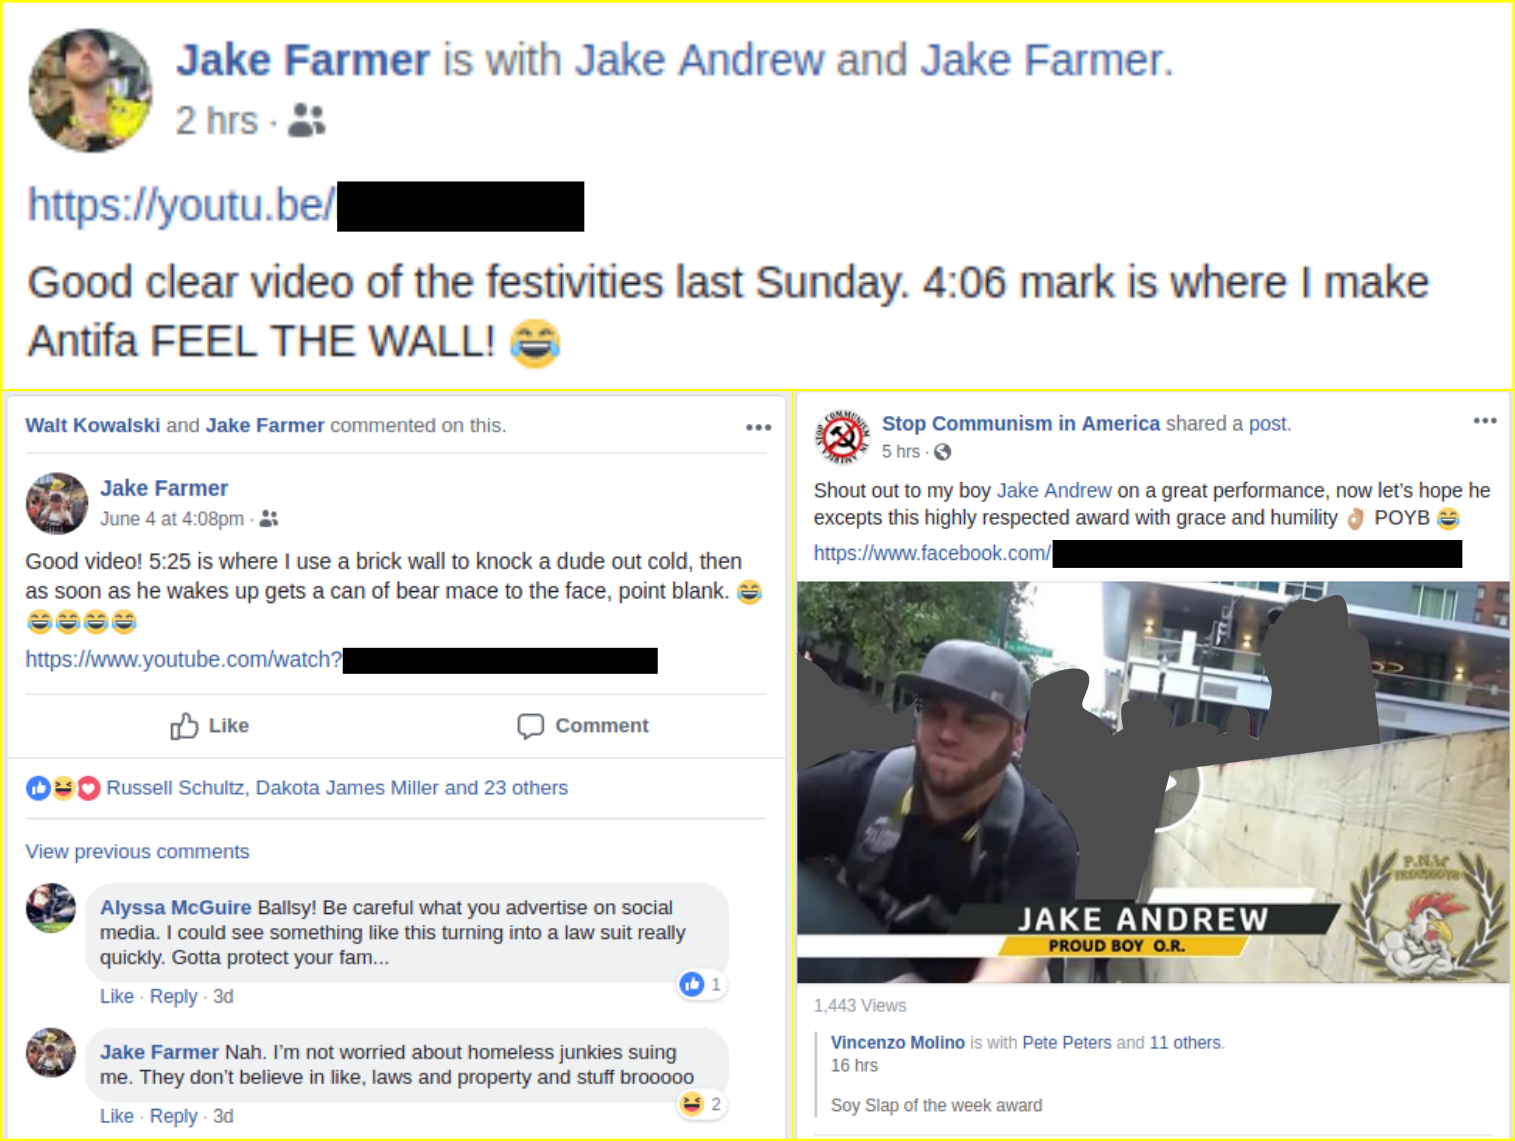 Jake Farmer boasts online about assaulting activists